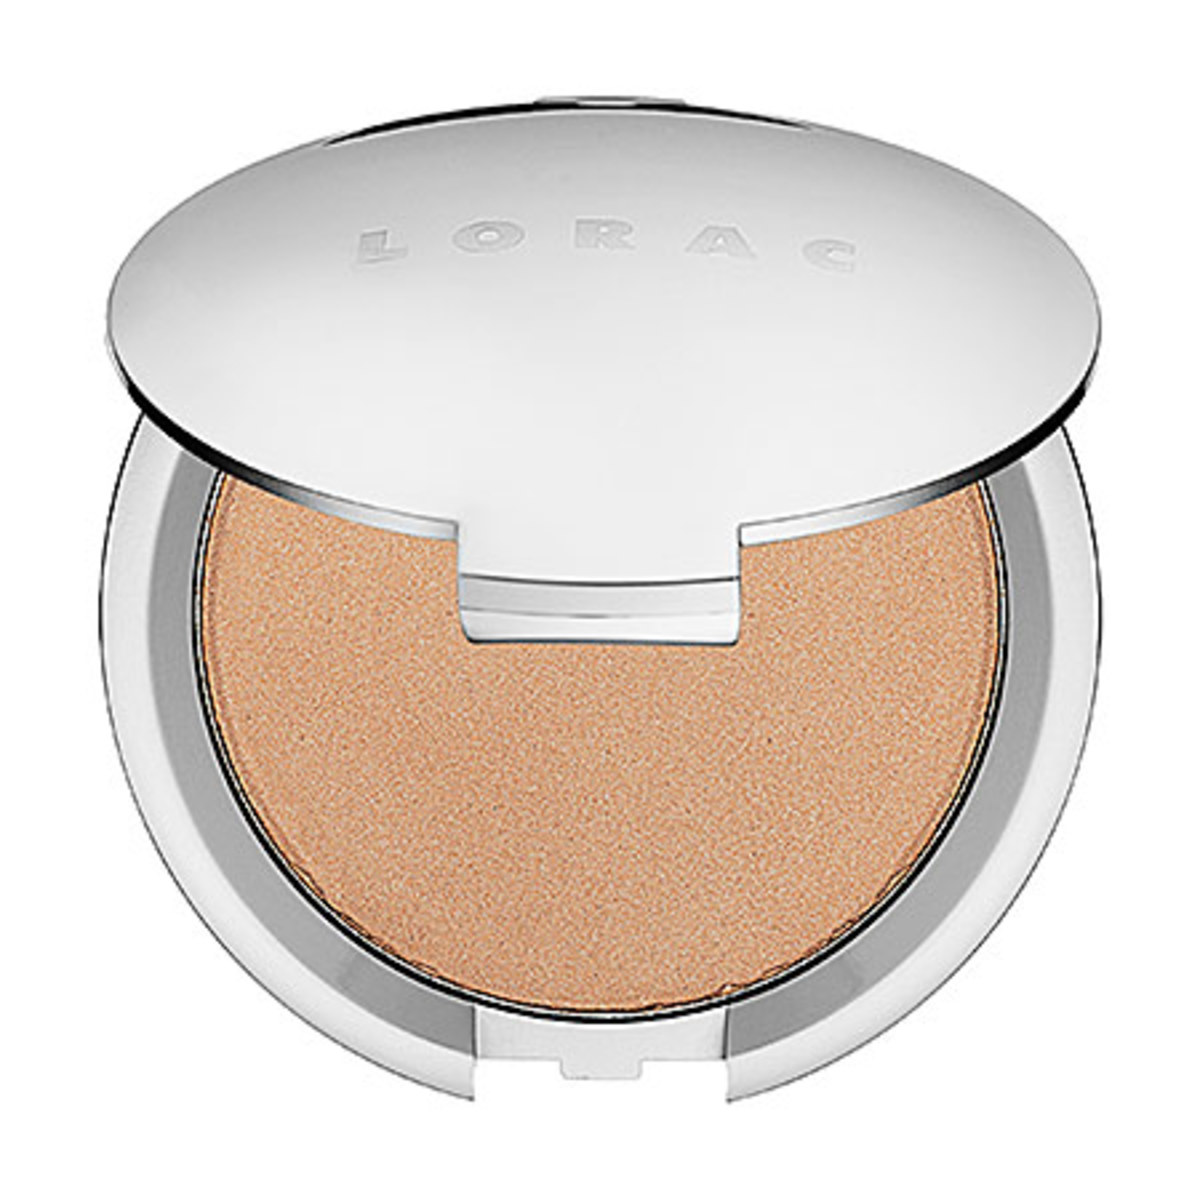 Lorac Perfectly Lit Oil-Free Luminizing Powder